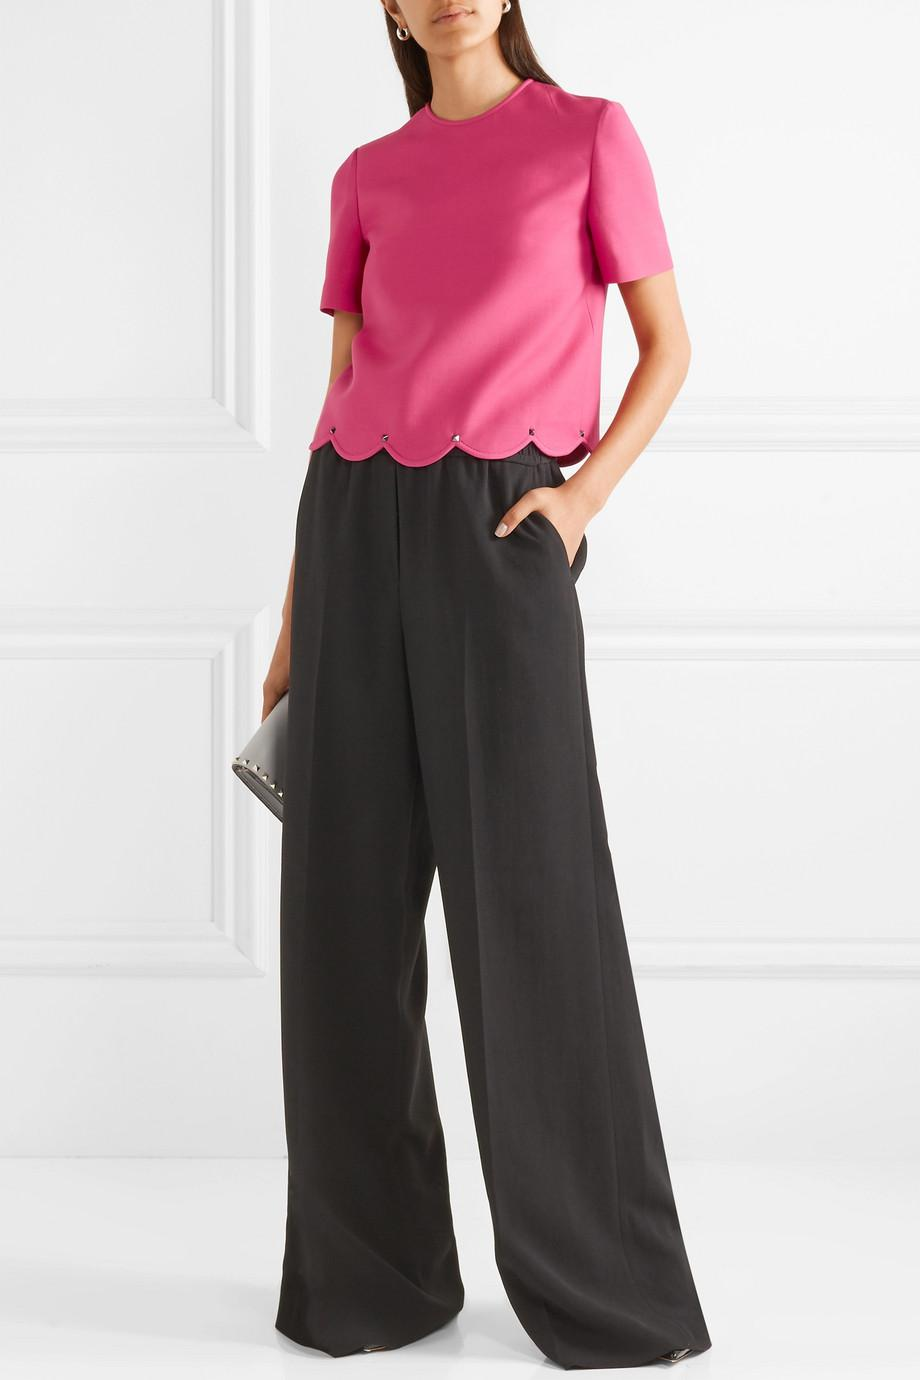 8a0b1be1c01 valentino-pink-Studded-Scalloped-Wool-And-Silk-blend-Crepe-Top.jpeg